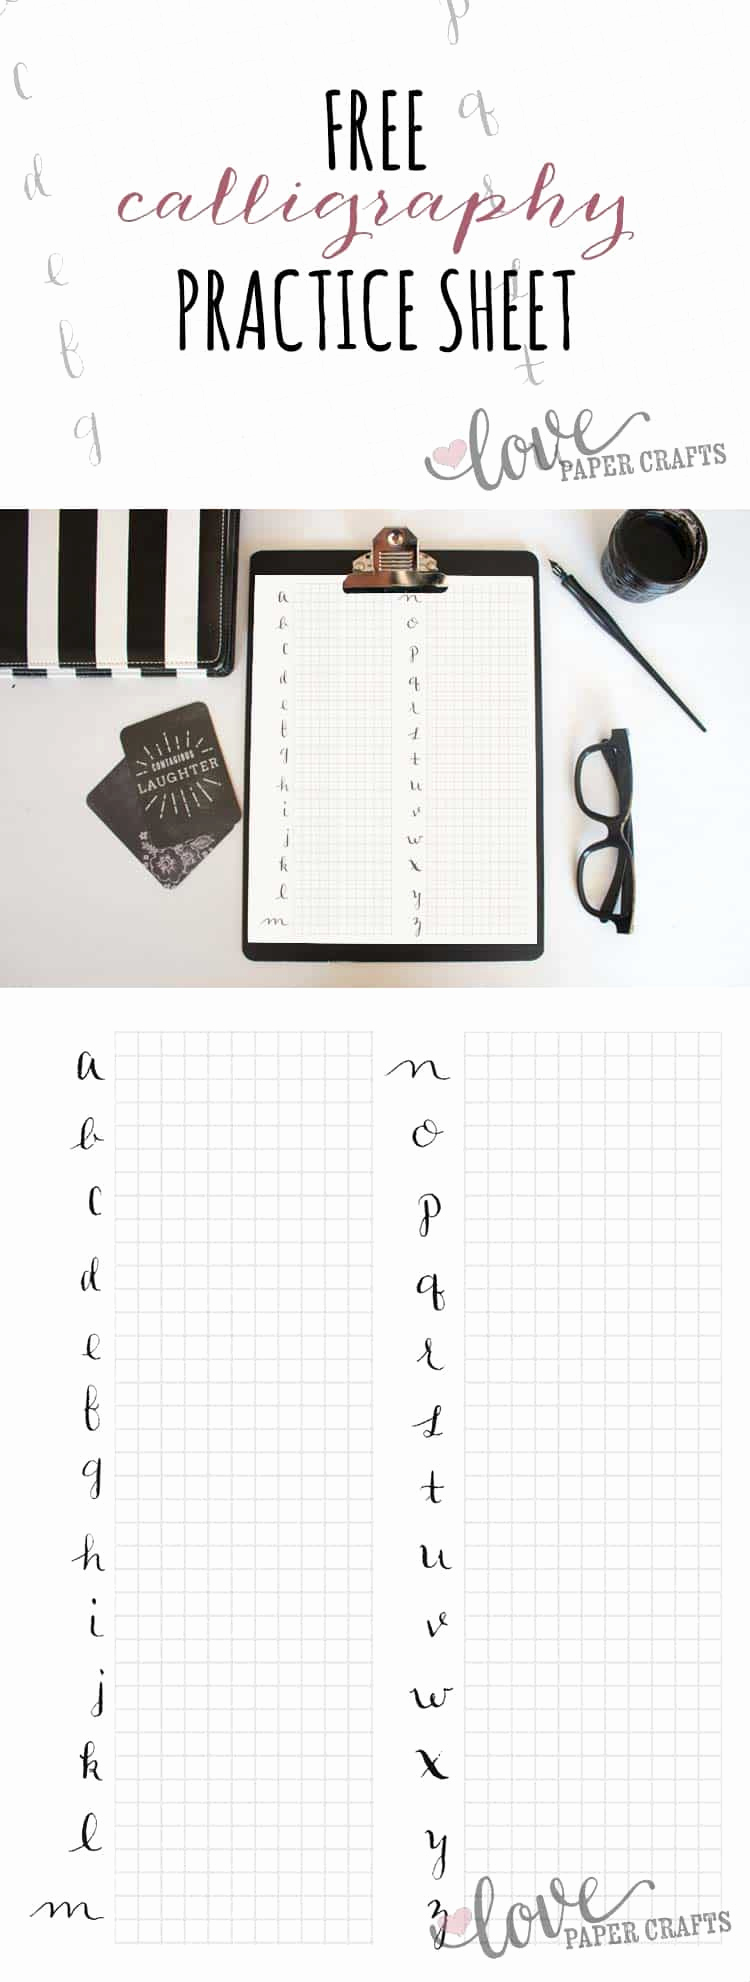 Free Calligraphy Worksheets Printable Awesome Free Printable Calligraphy Alphabet Practice Sheets